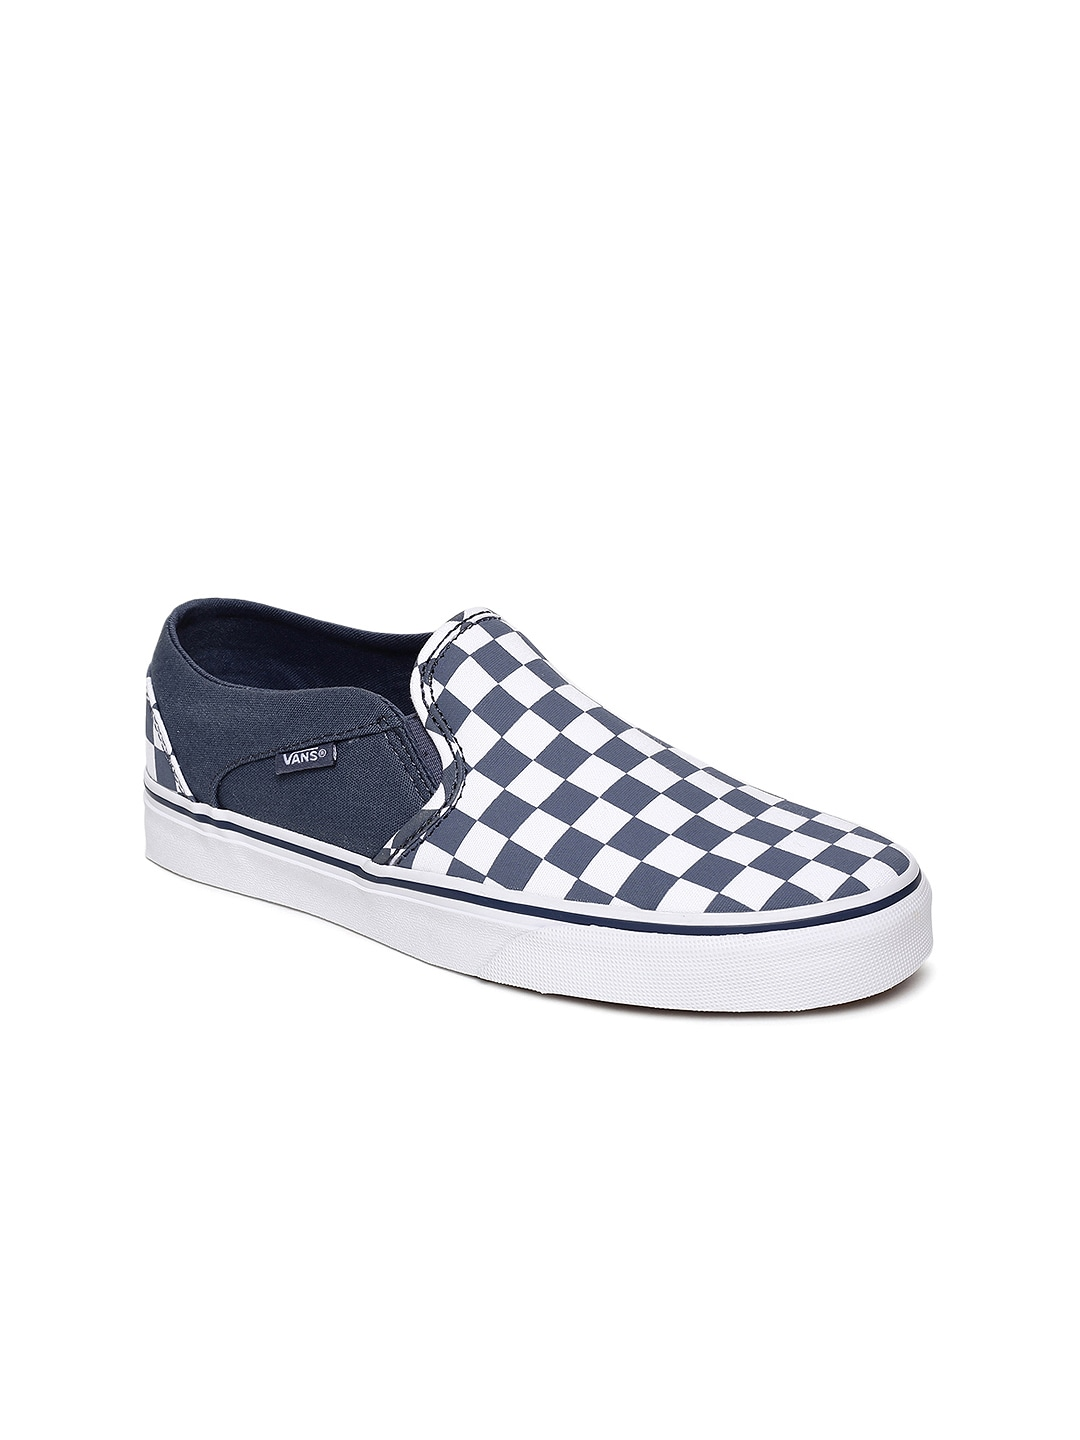 7a37f35eb890cf Vans Shoes for Women - Buy Vans Shoes for Girls Online - Myntra